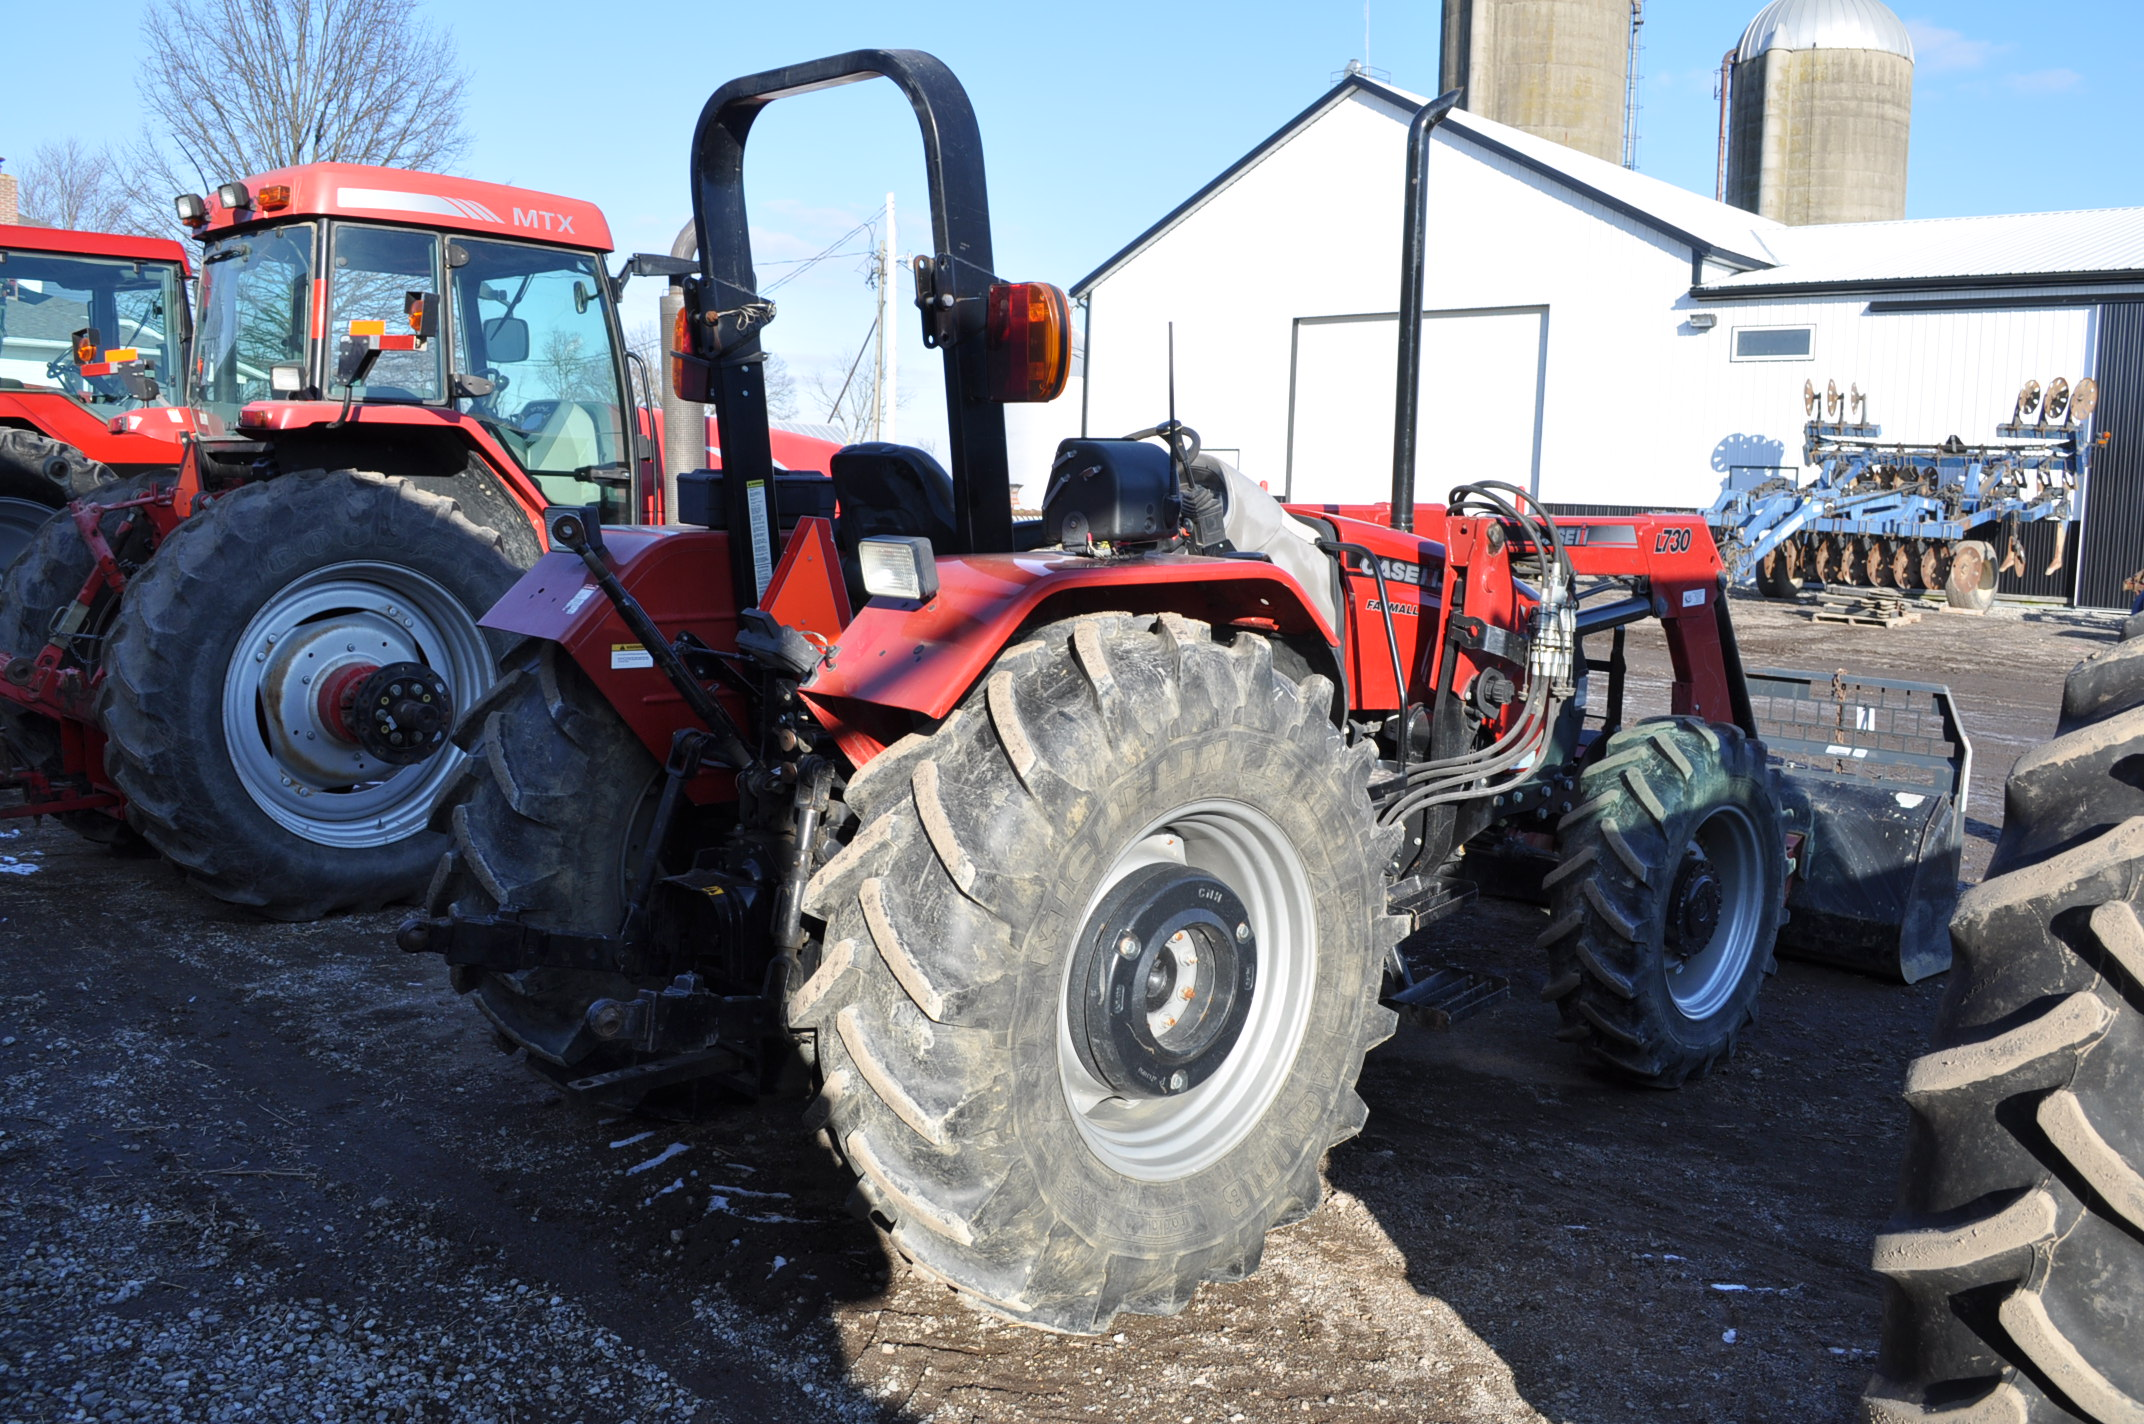 Case IH 85U Farmall MFWD tractor, 18.4R30 rear, 12.4R24 front, open station, mechanical shuttle - Image 4 of 16